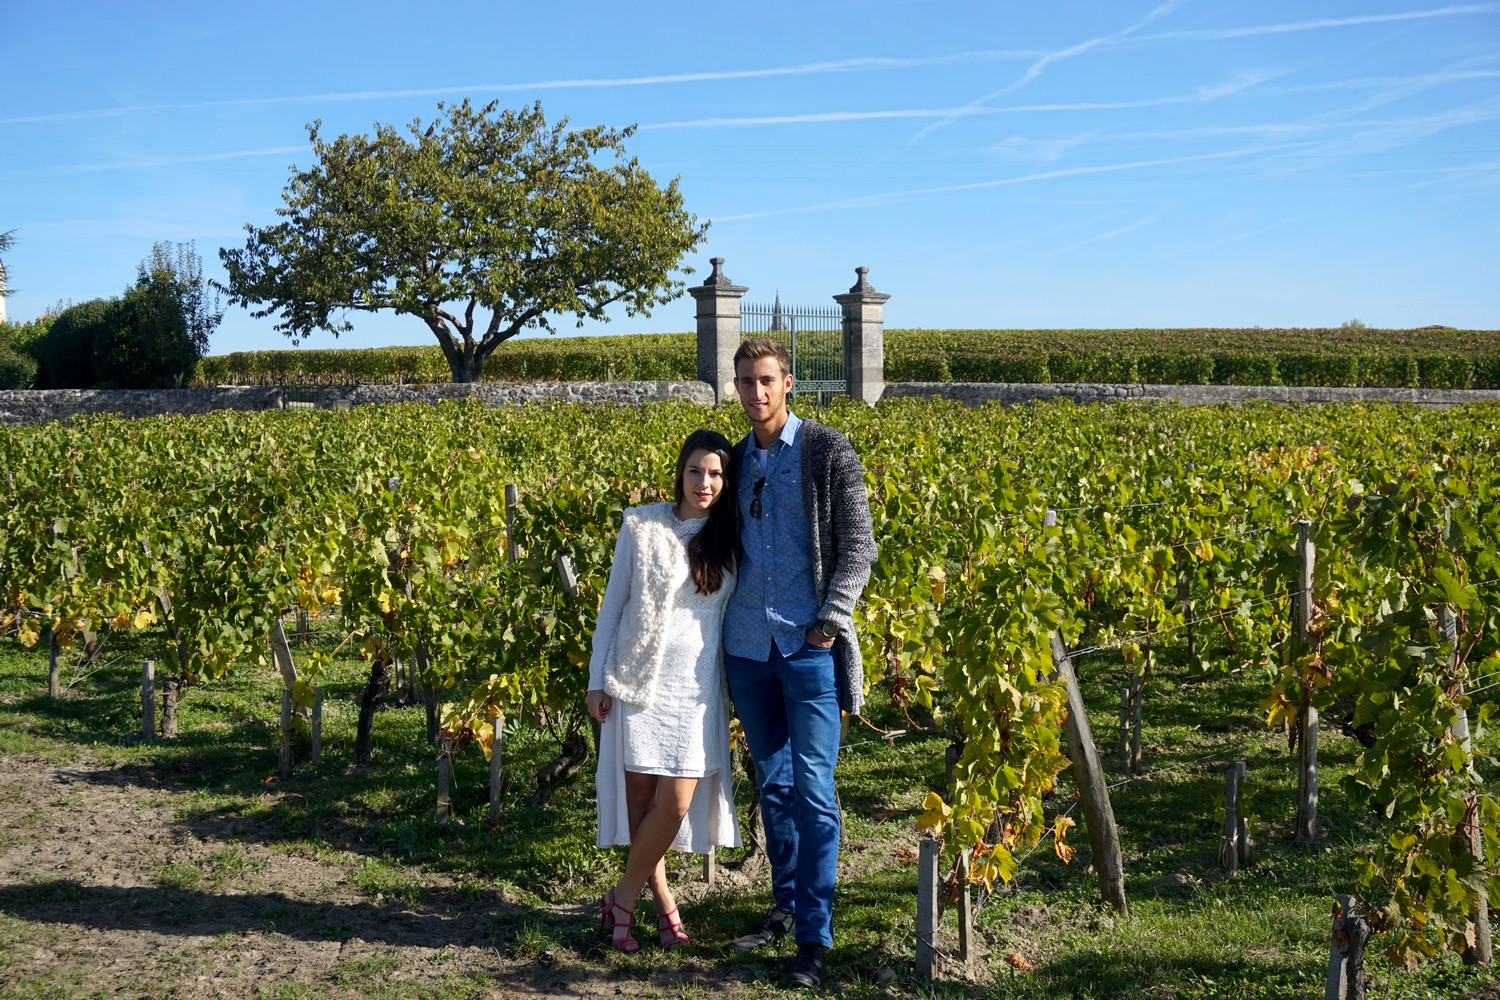 1-an-du-blog-en-couple-bordeaux-corse-blog-voyage-lifestyle-mode-look-shooting-photo-couple-vigne-01